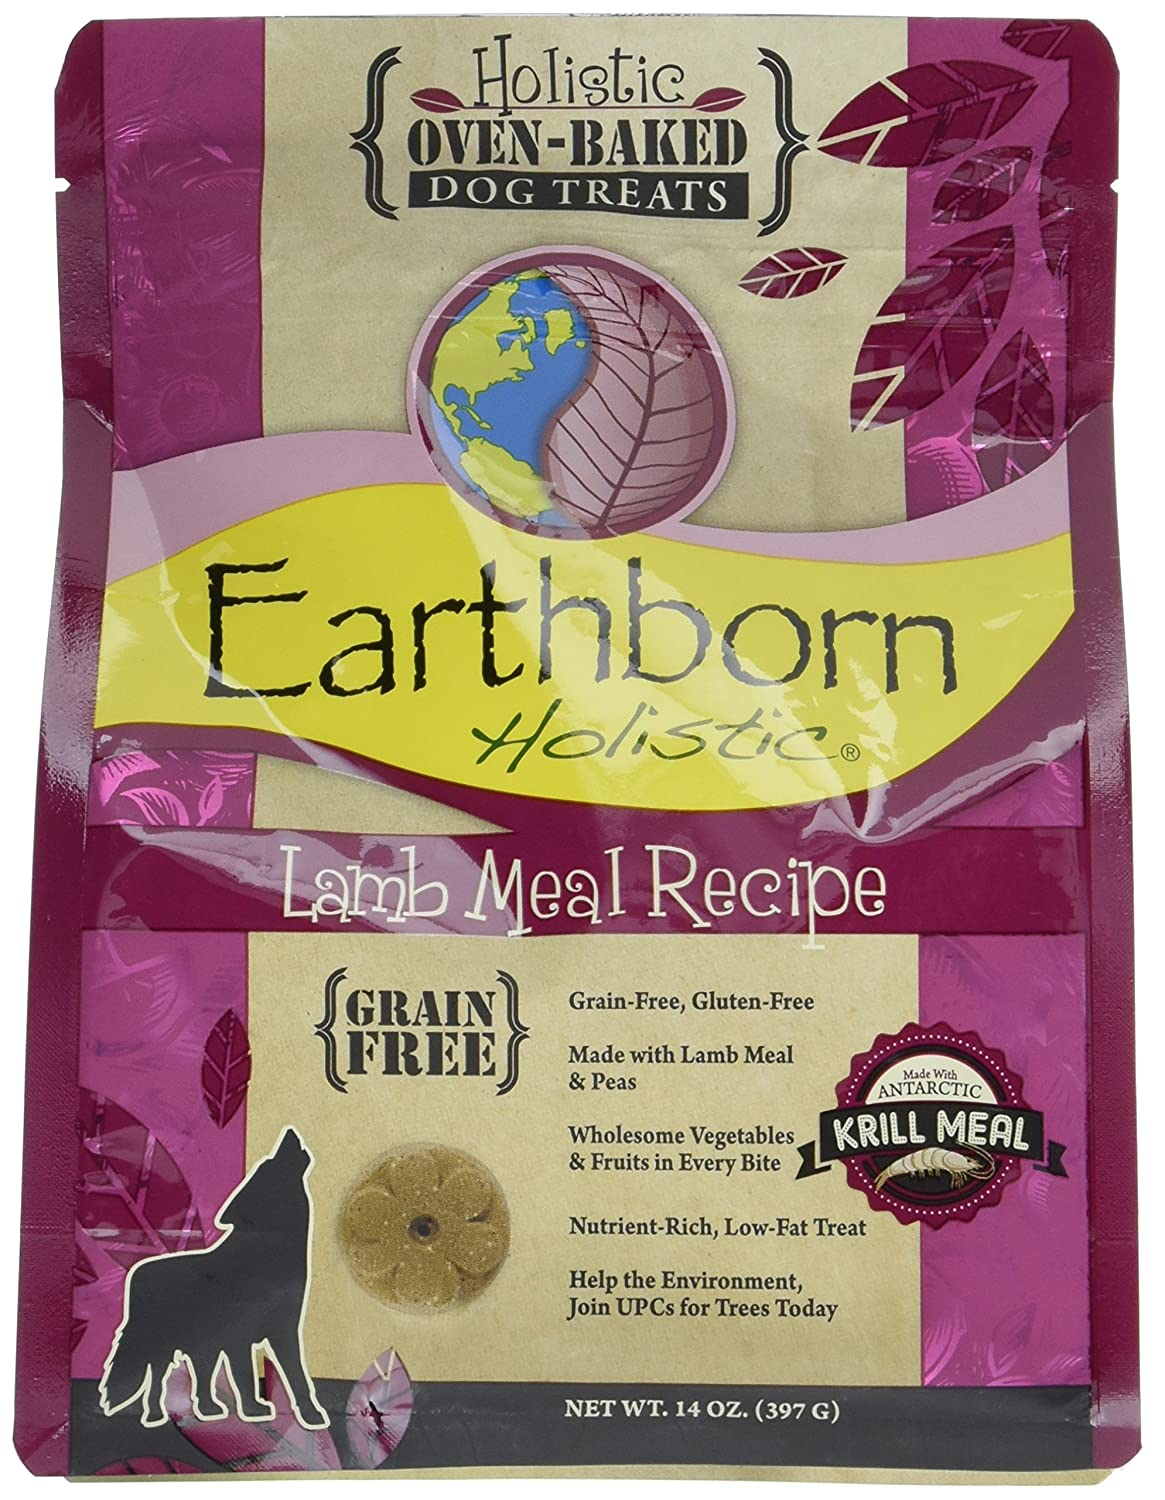 Earthborn Holistic Lamb Meal Recipe Holistic Oven-baked Dog Treats (Lamb)